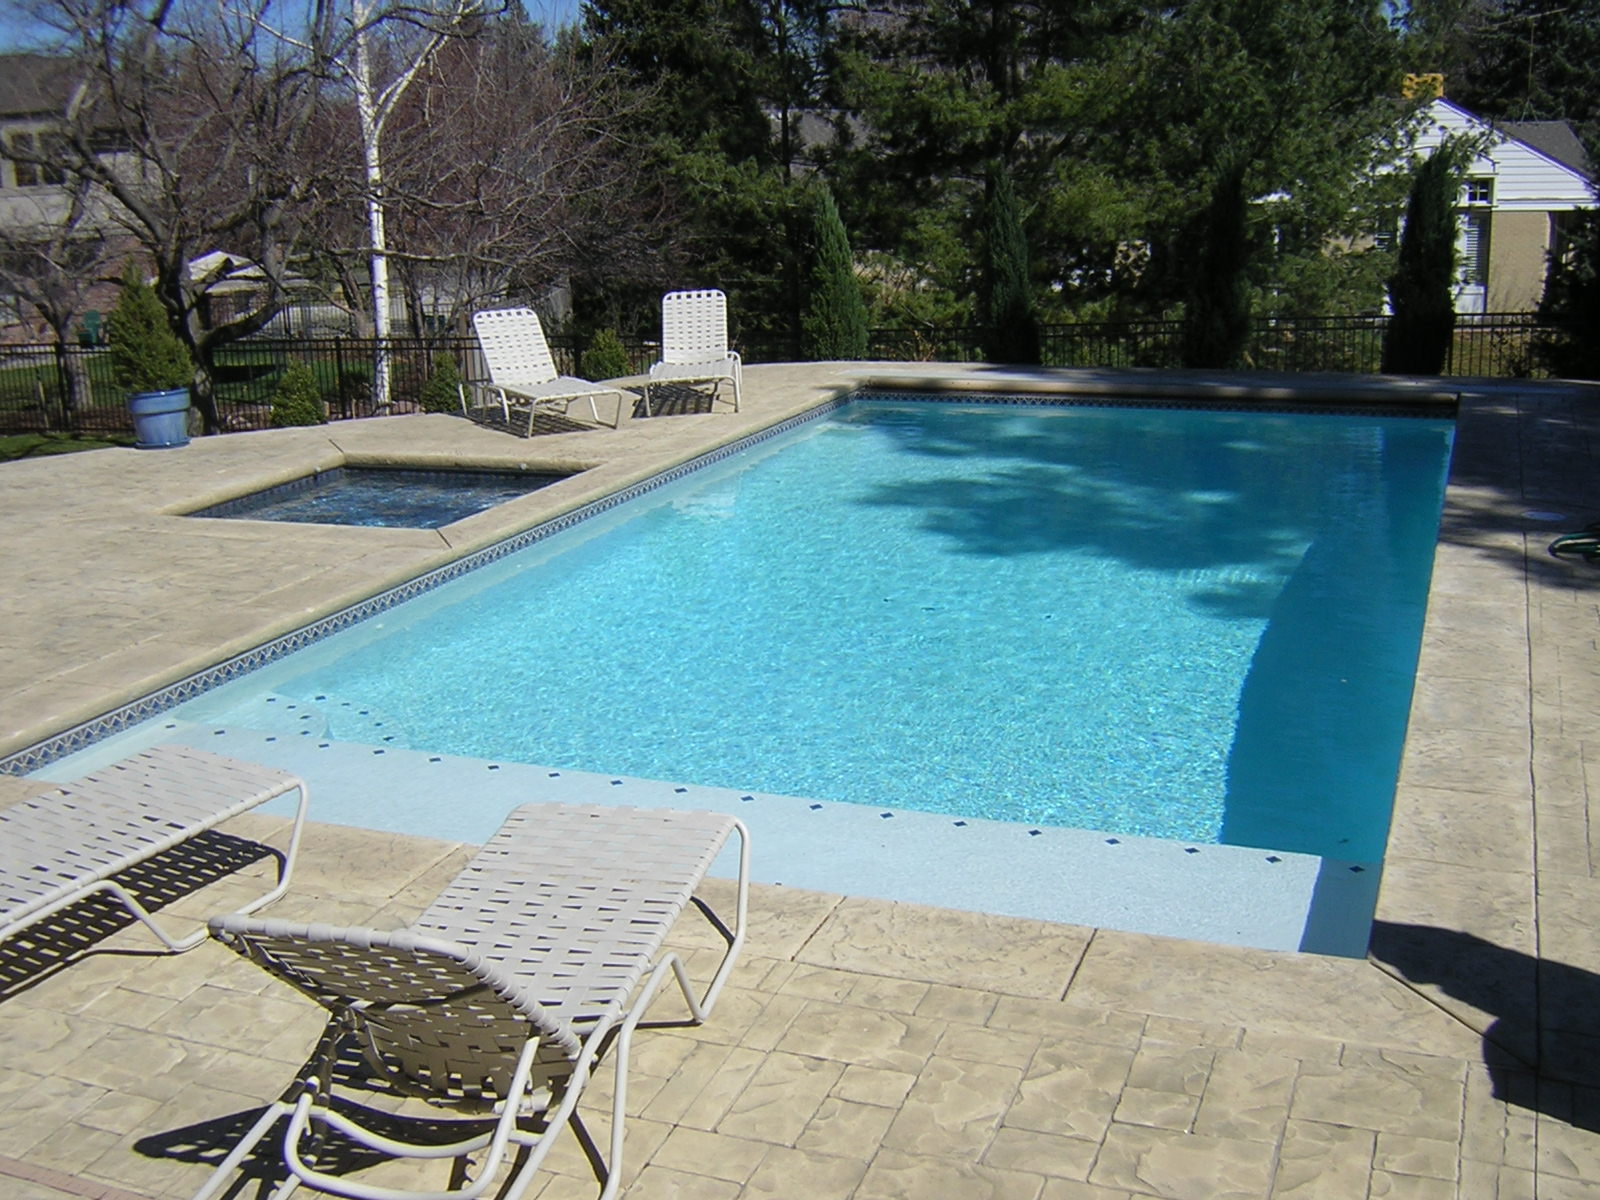 Pool and Spa, Cherry Creek, Denver, CO